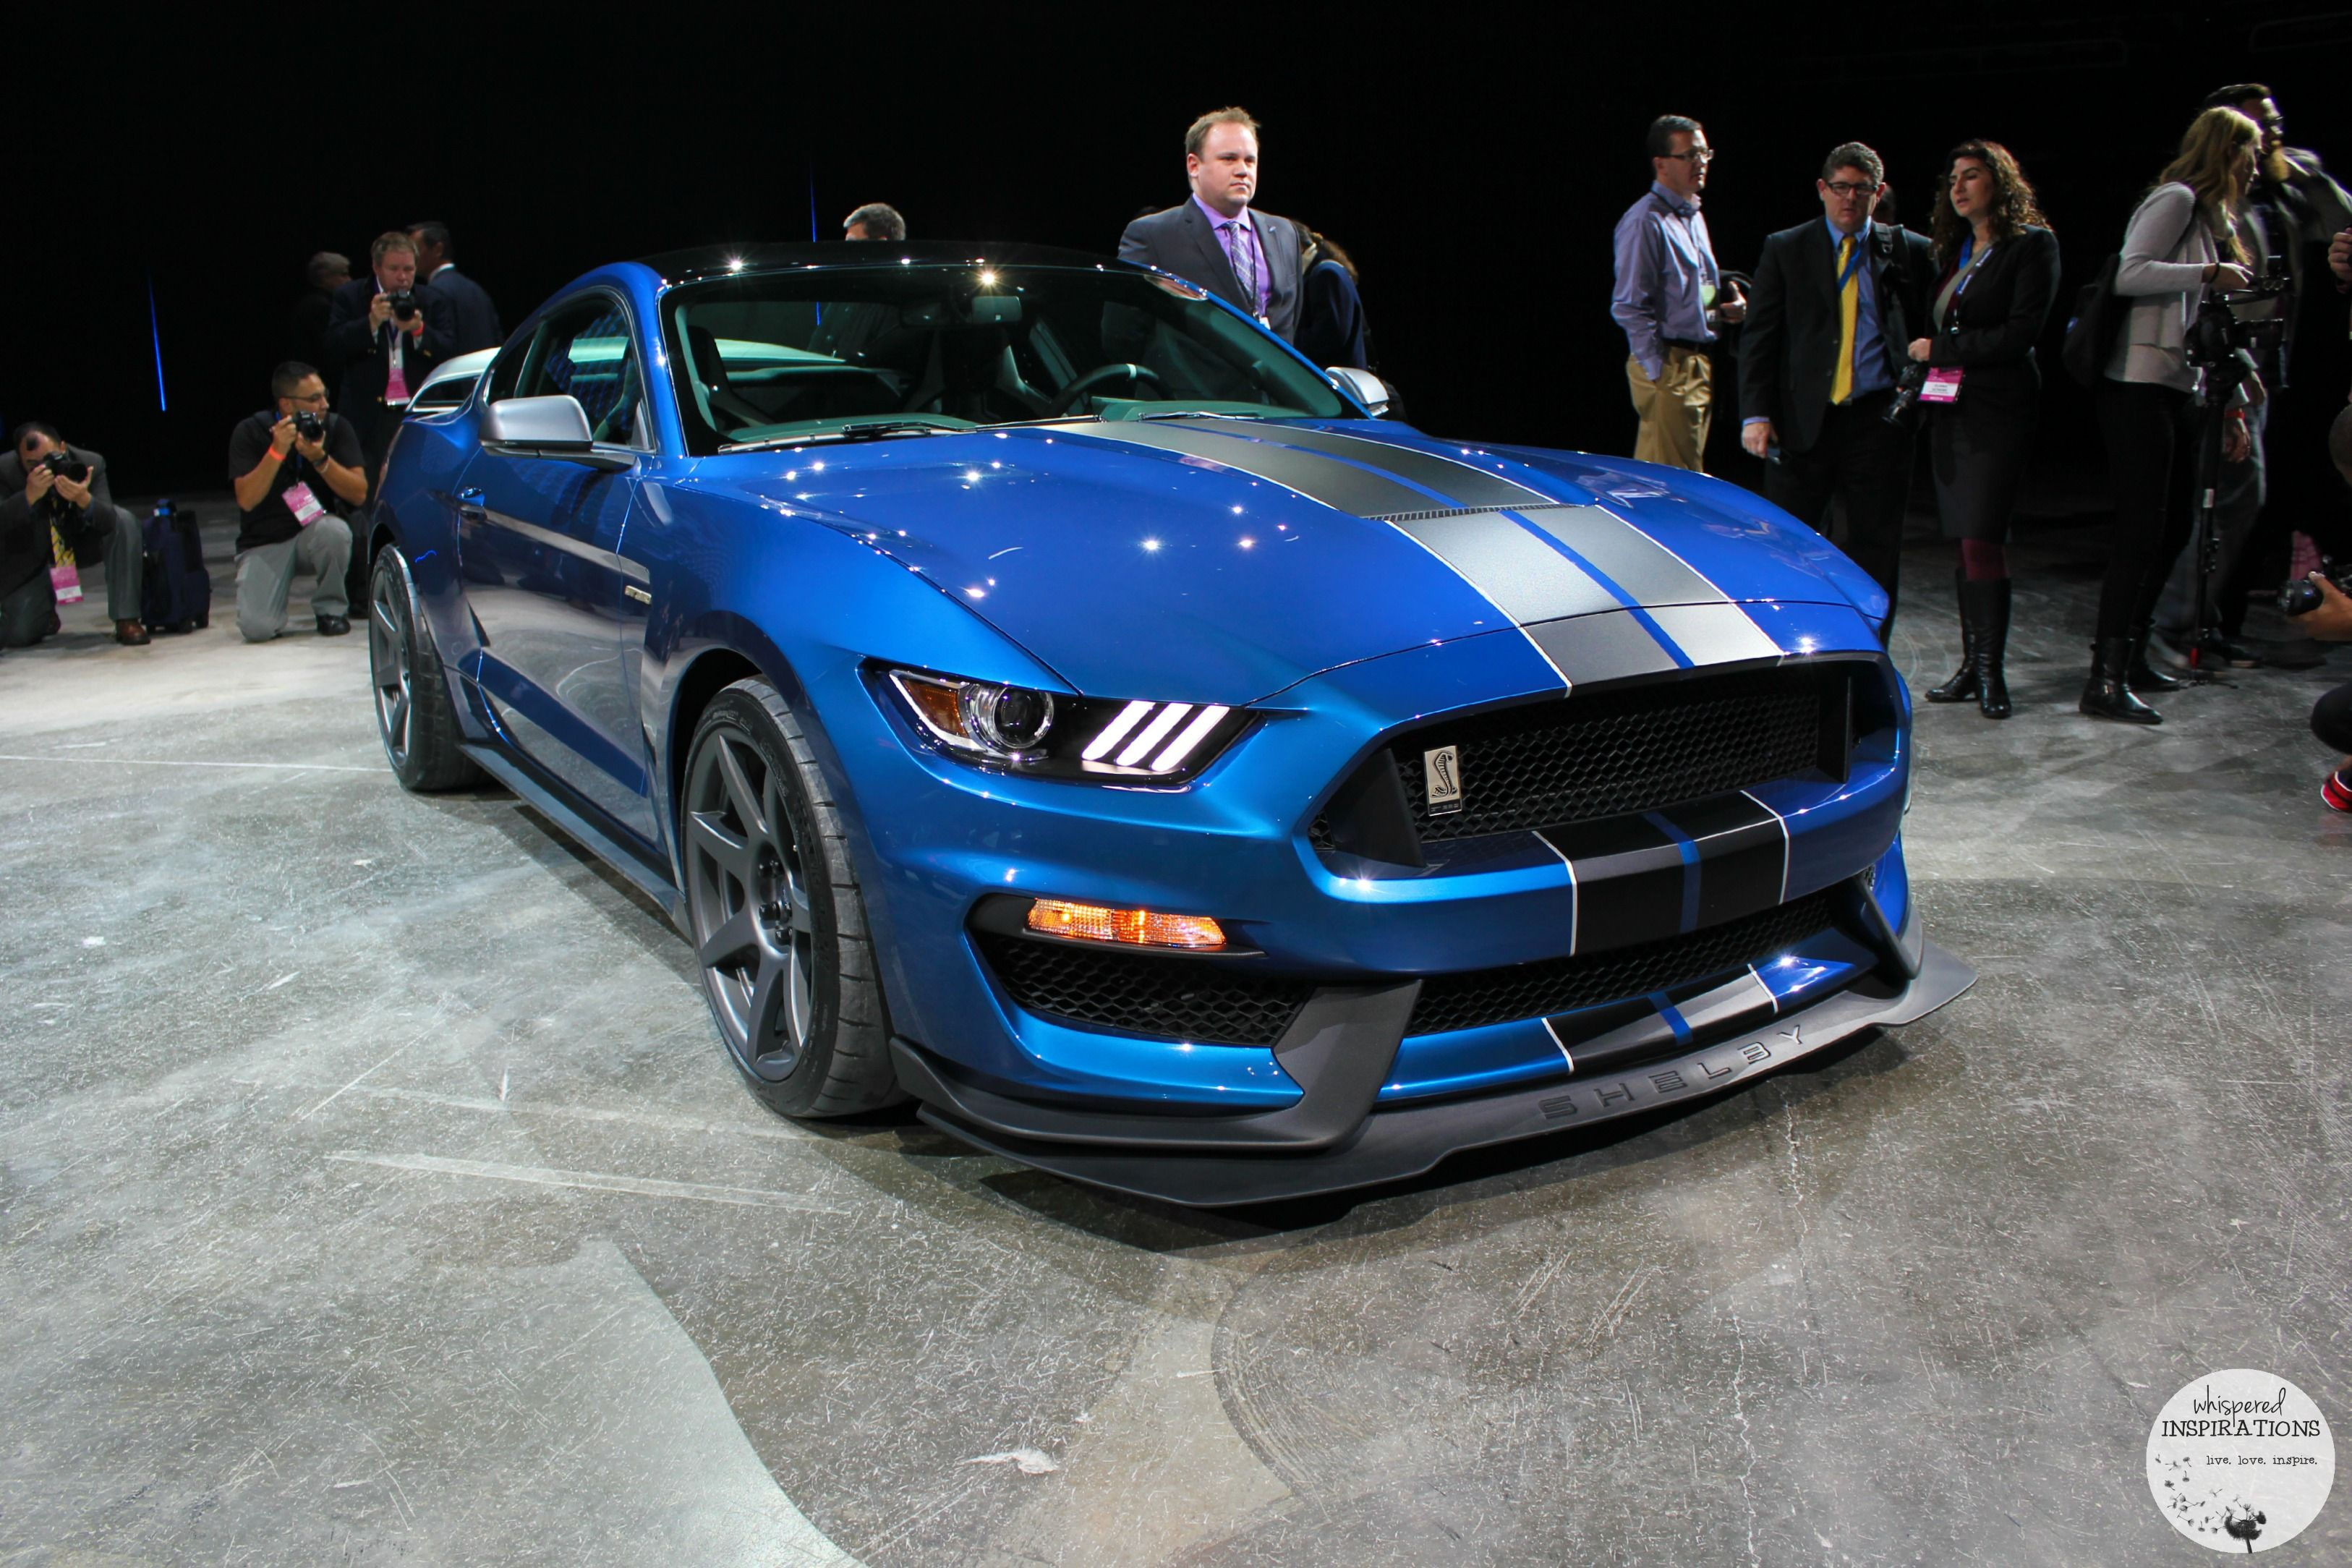 Fords Naias New Car Reveals The  Ford F  Raptor Ford Shelby Gt R Ford Gt Innovation Through Performance Fordnaias Naias